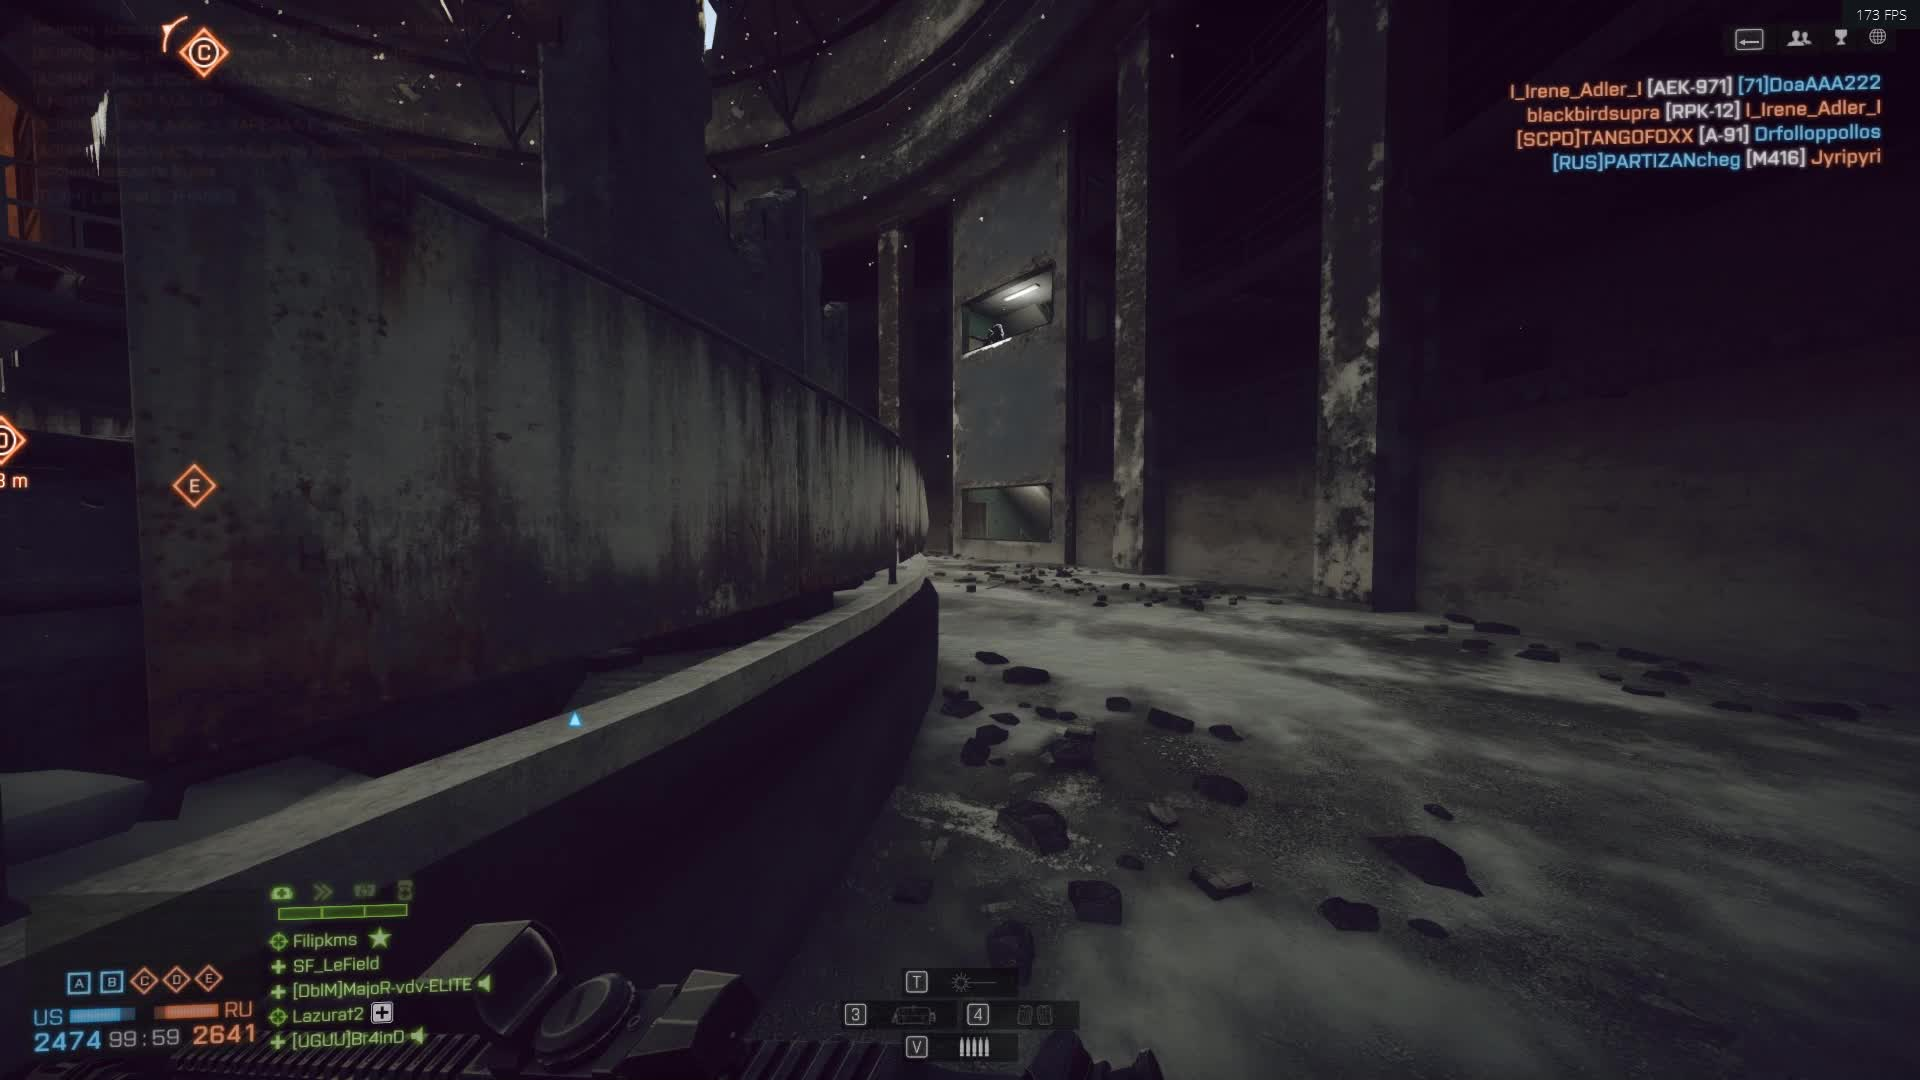 BF4, Battlefield 4, M416, Operation Locker, 5k GIFs